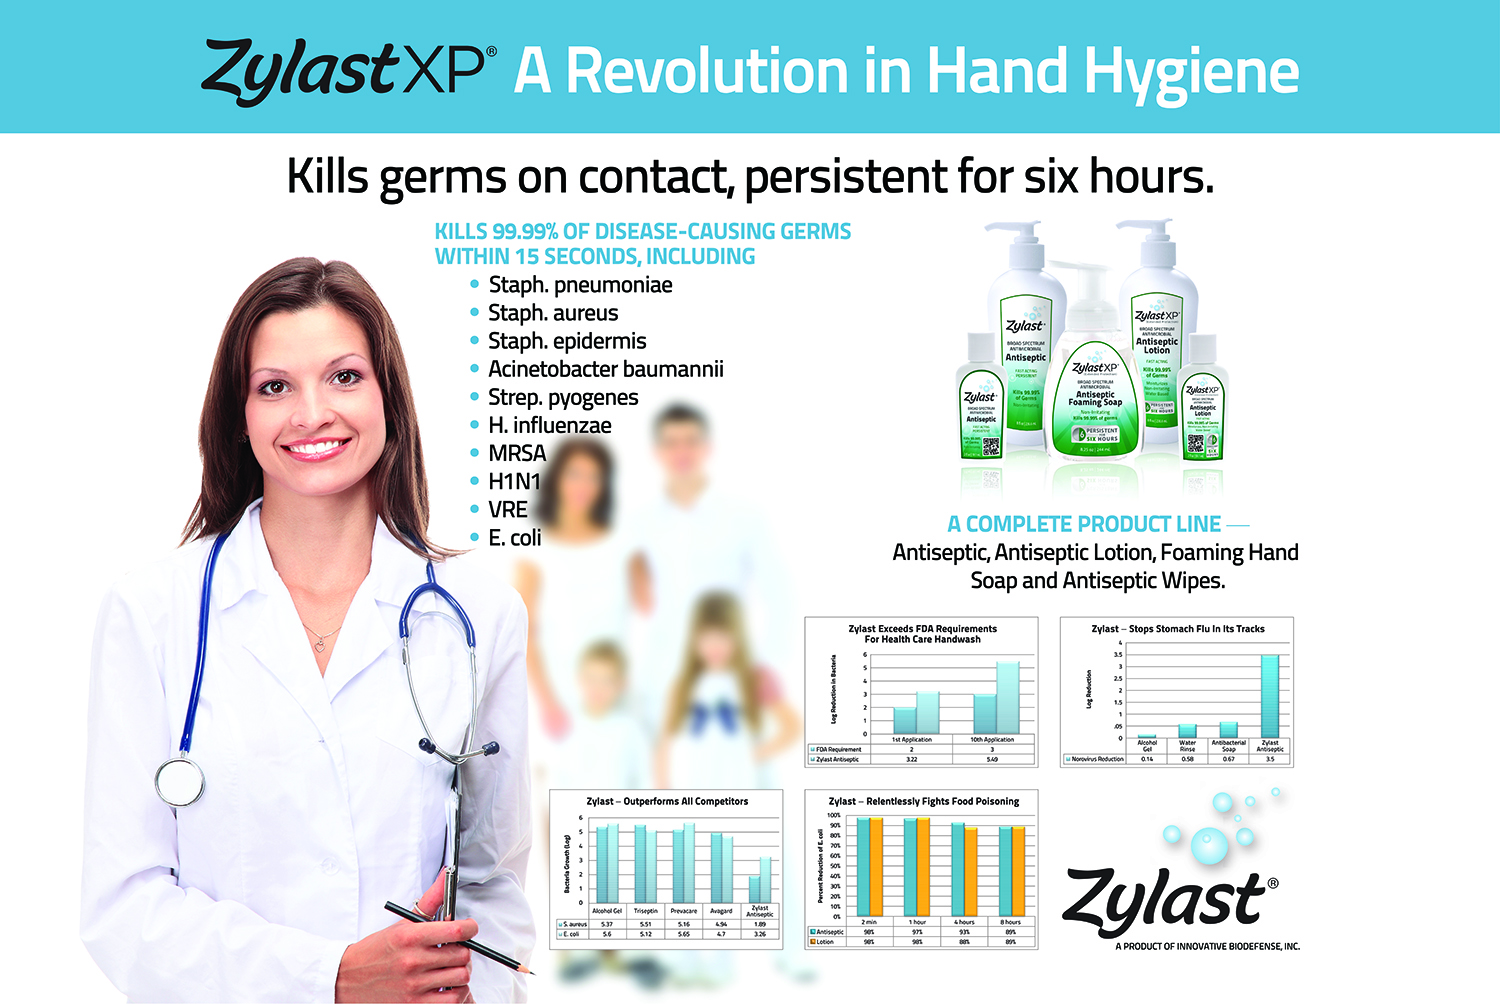 ZylastXP Antiseptic Products